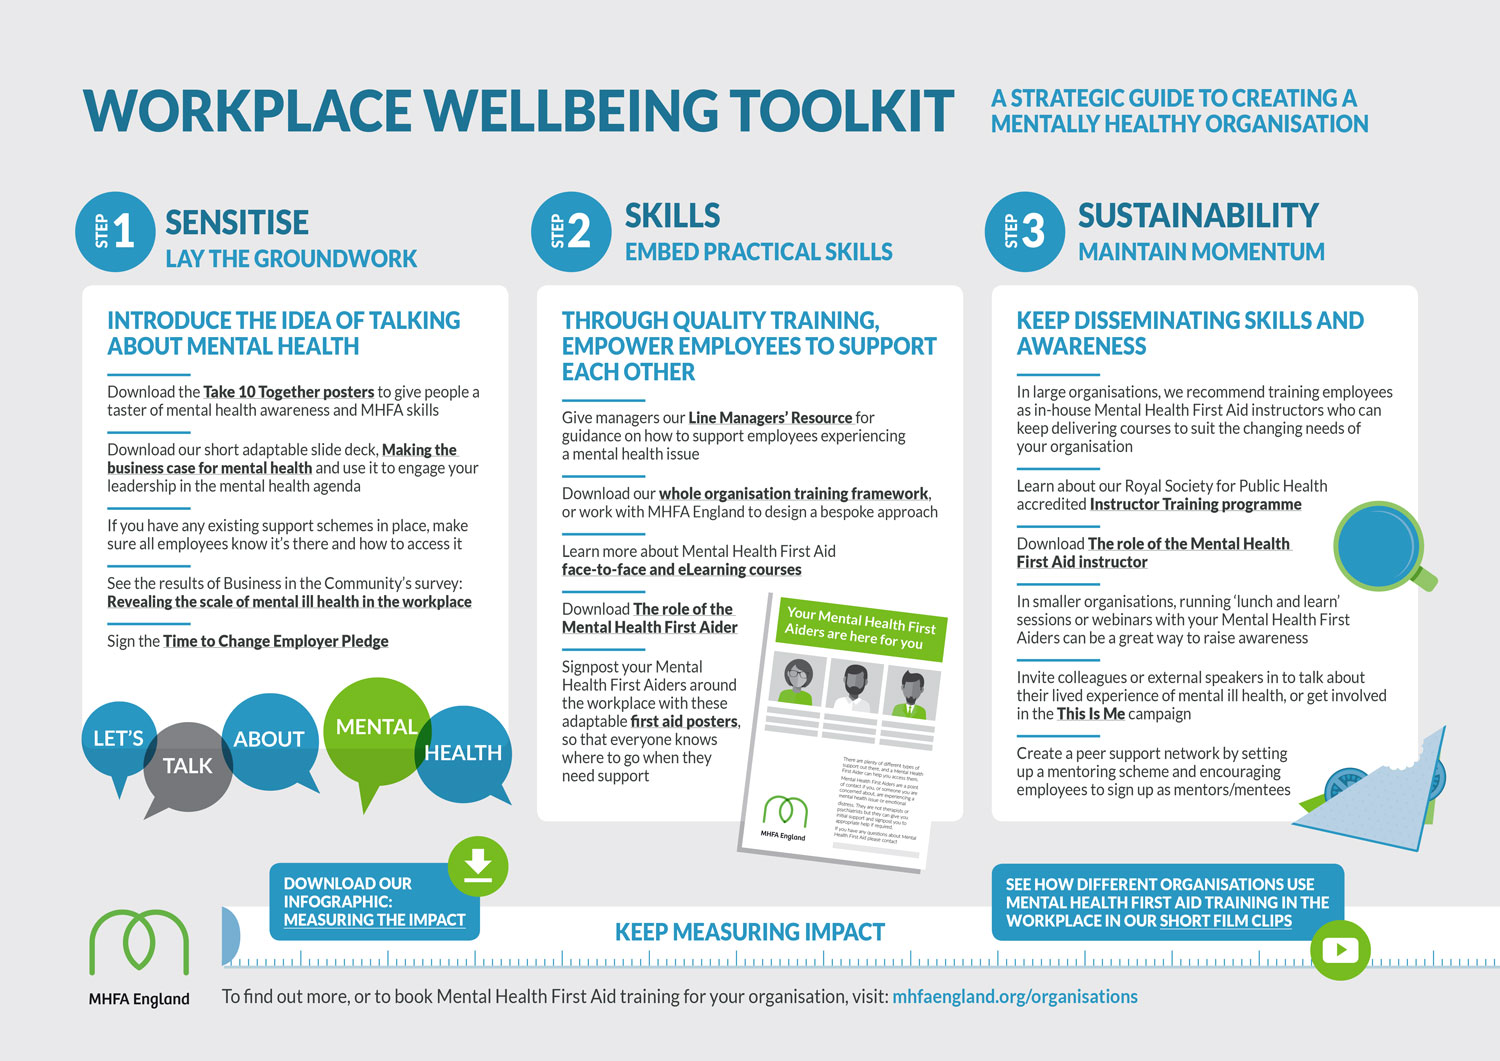 Workplace Wellbeing Toolkit